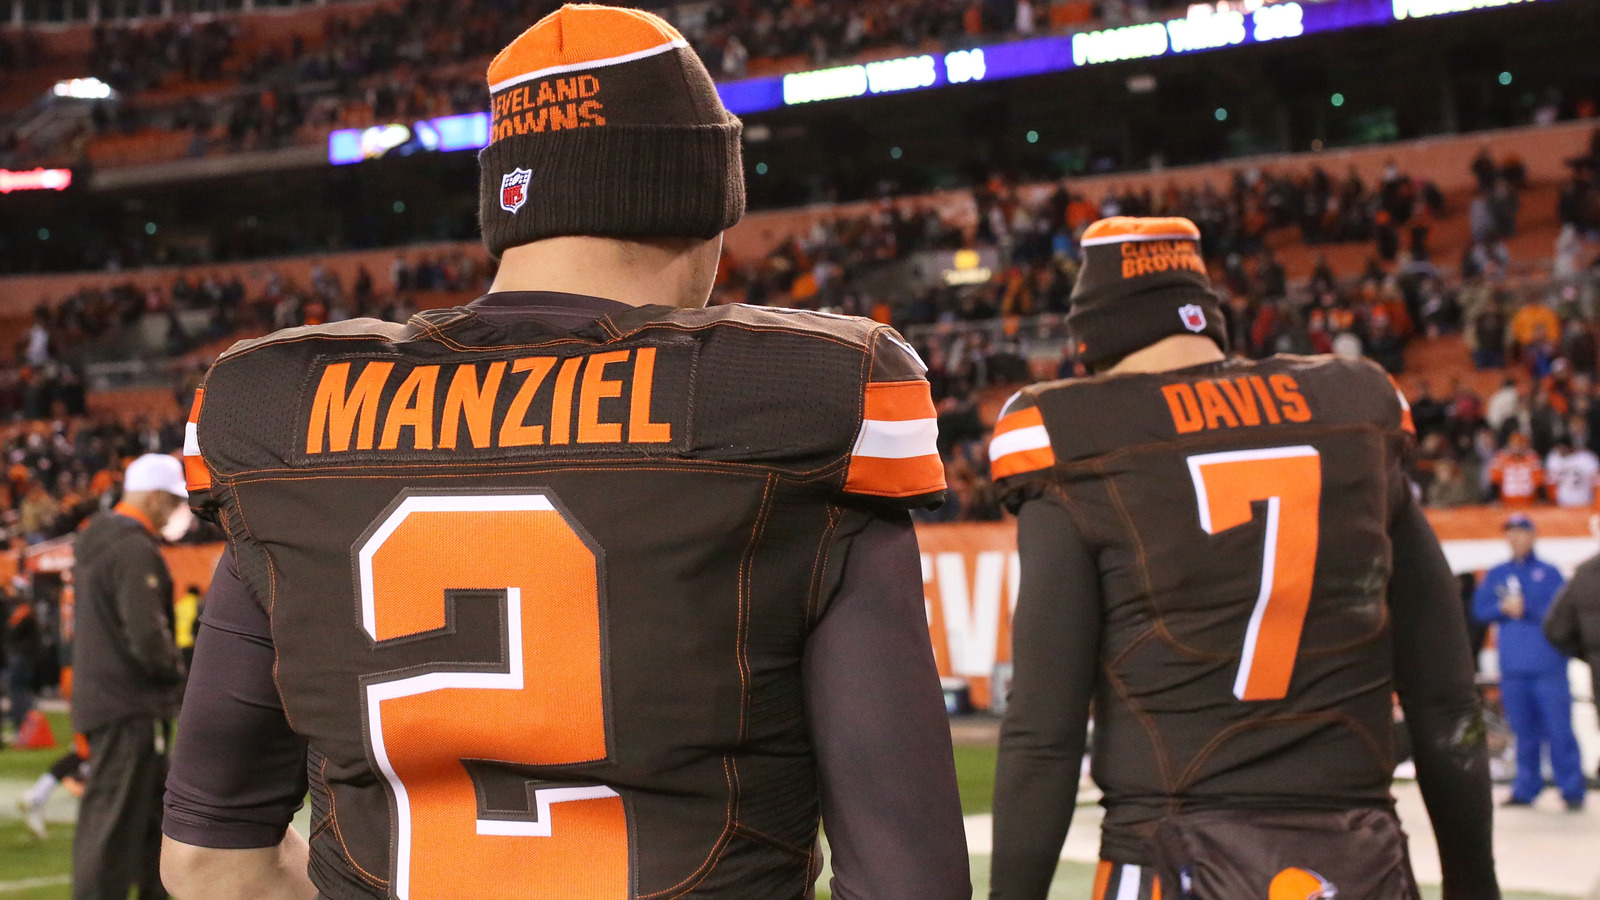 Browns: What players are worth keeping for next season?